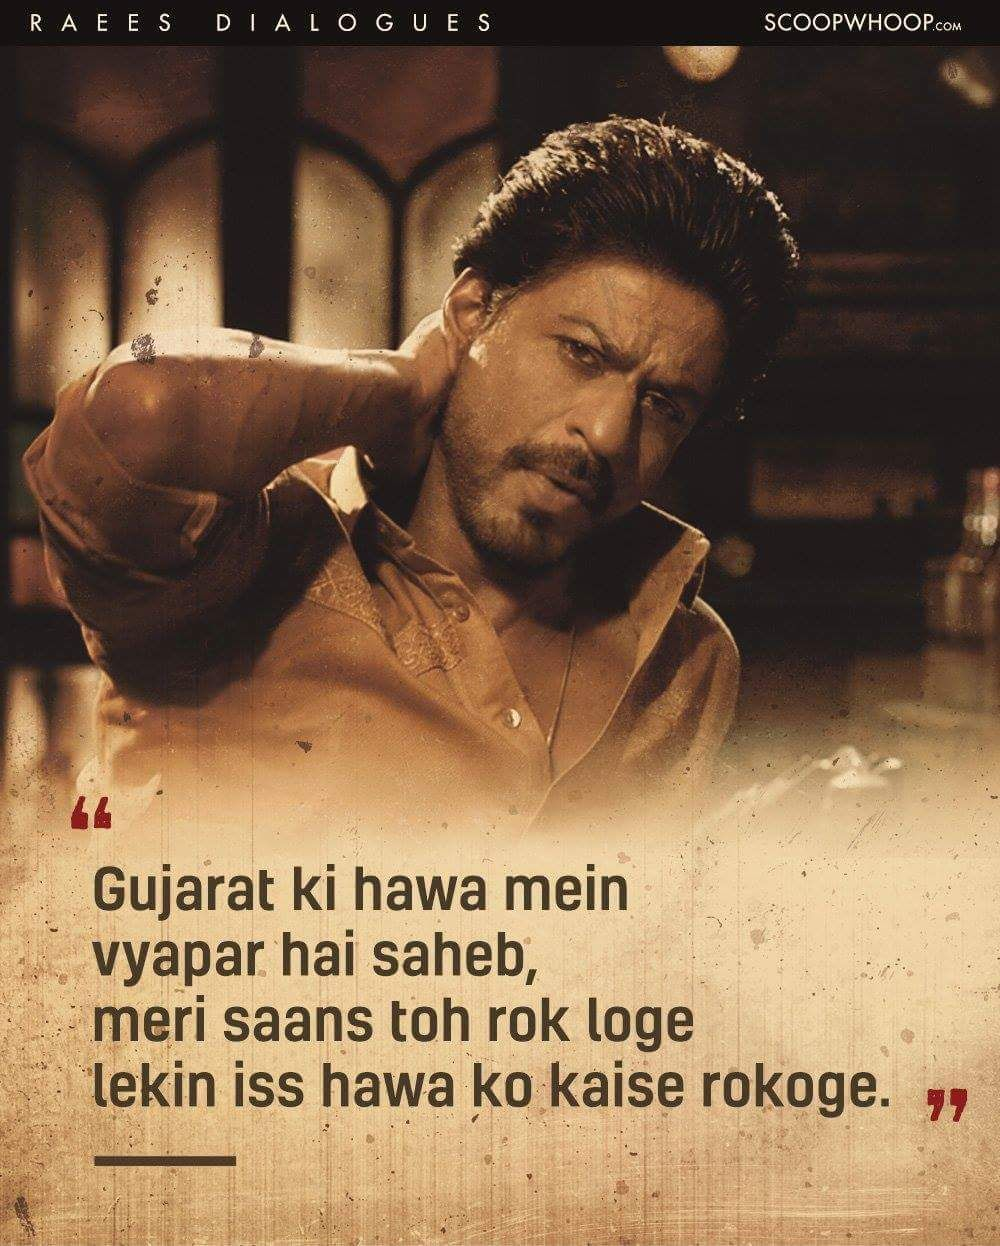 Pin By Vyenti Poeran On Quotes Funny Dialogues Movie Dialogues Shahrukh Khan